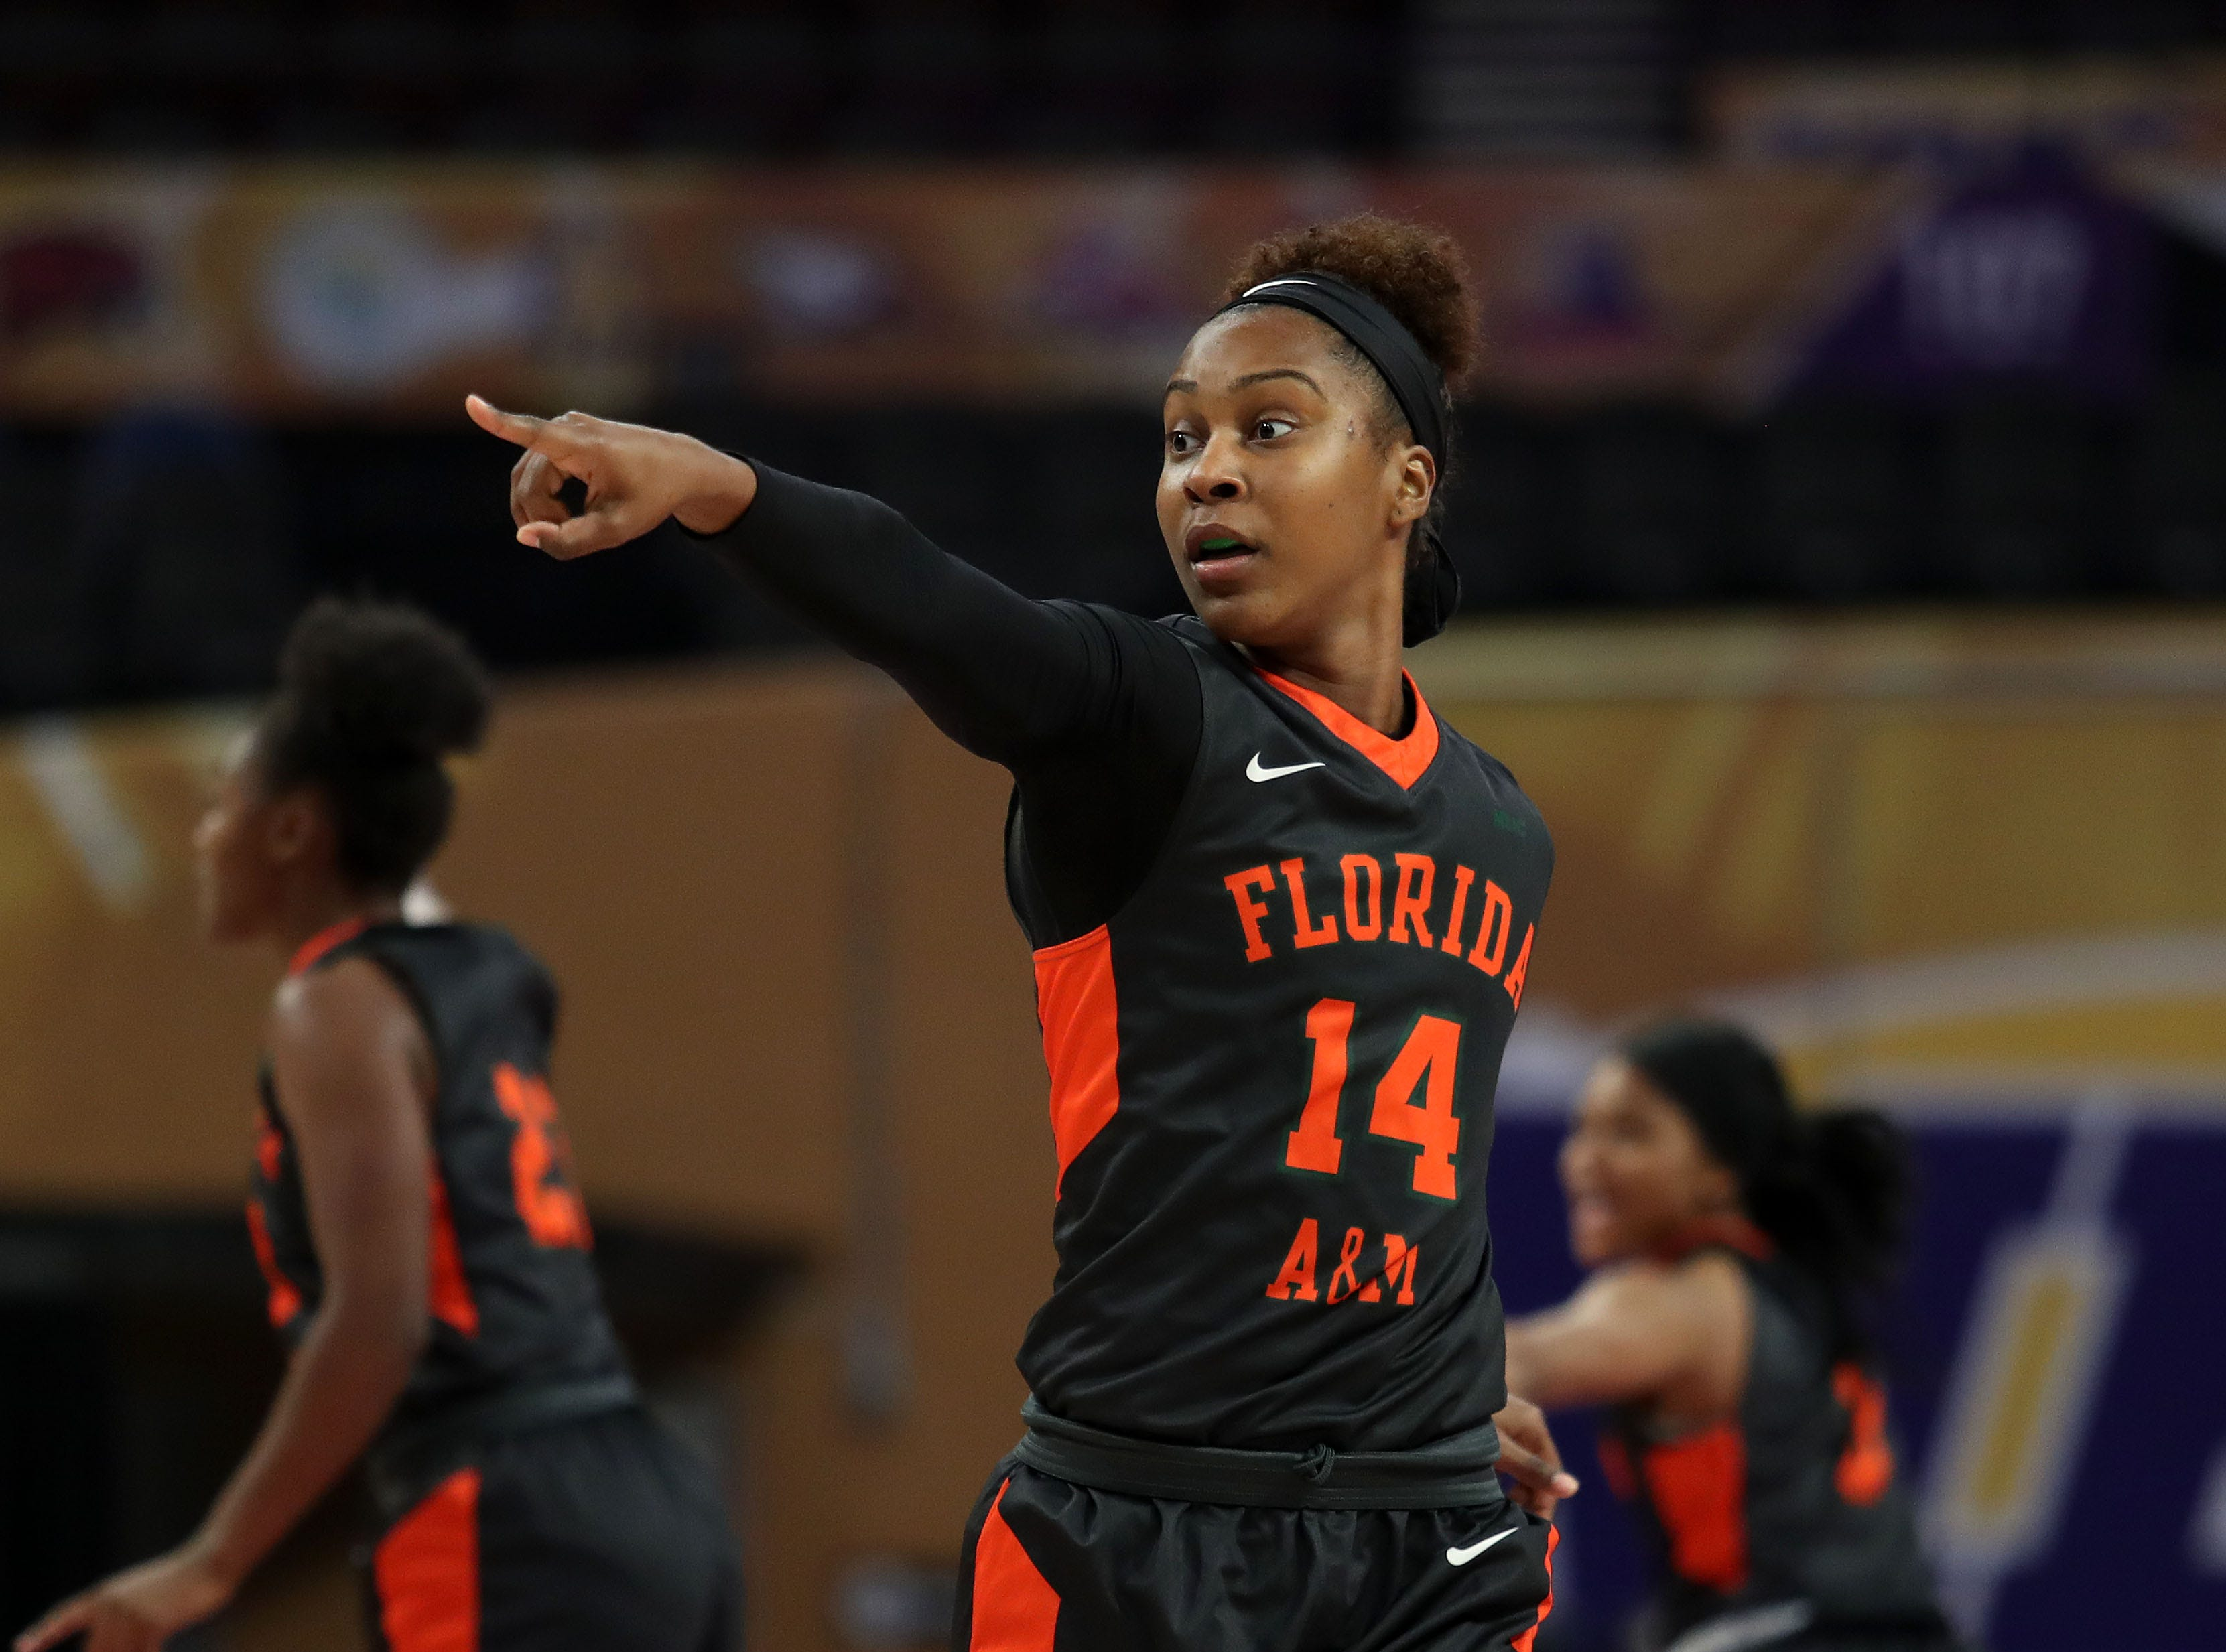 FAMU's Tyra James points out a play versus Howard in the first round of the MEAC tournament on Monday, March 11, 2019.